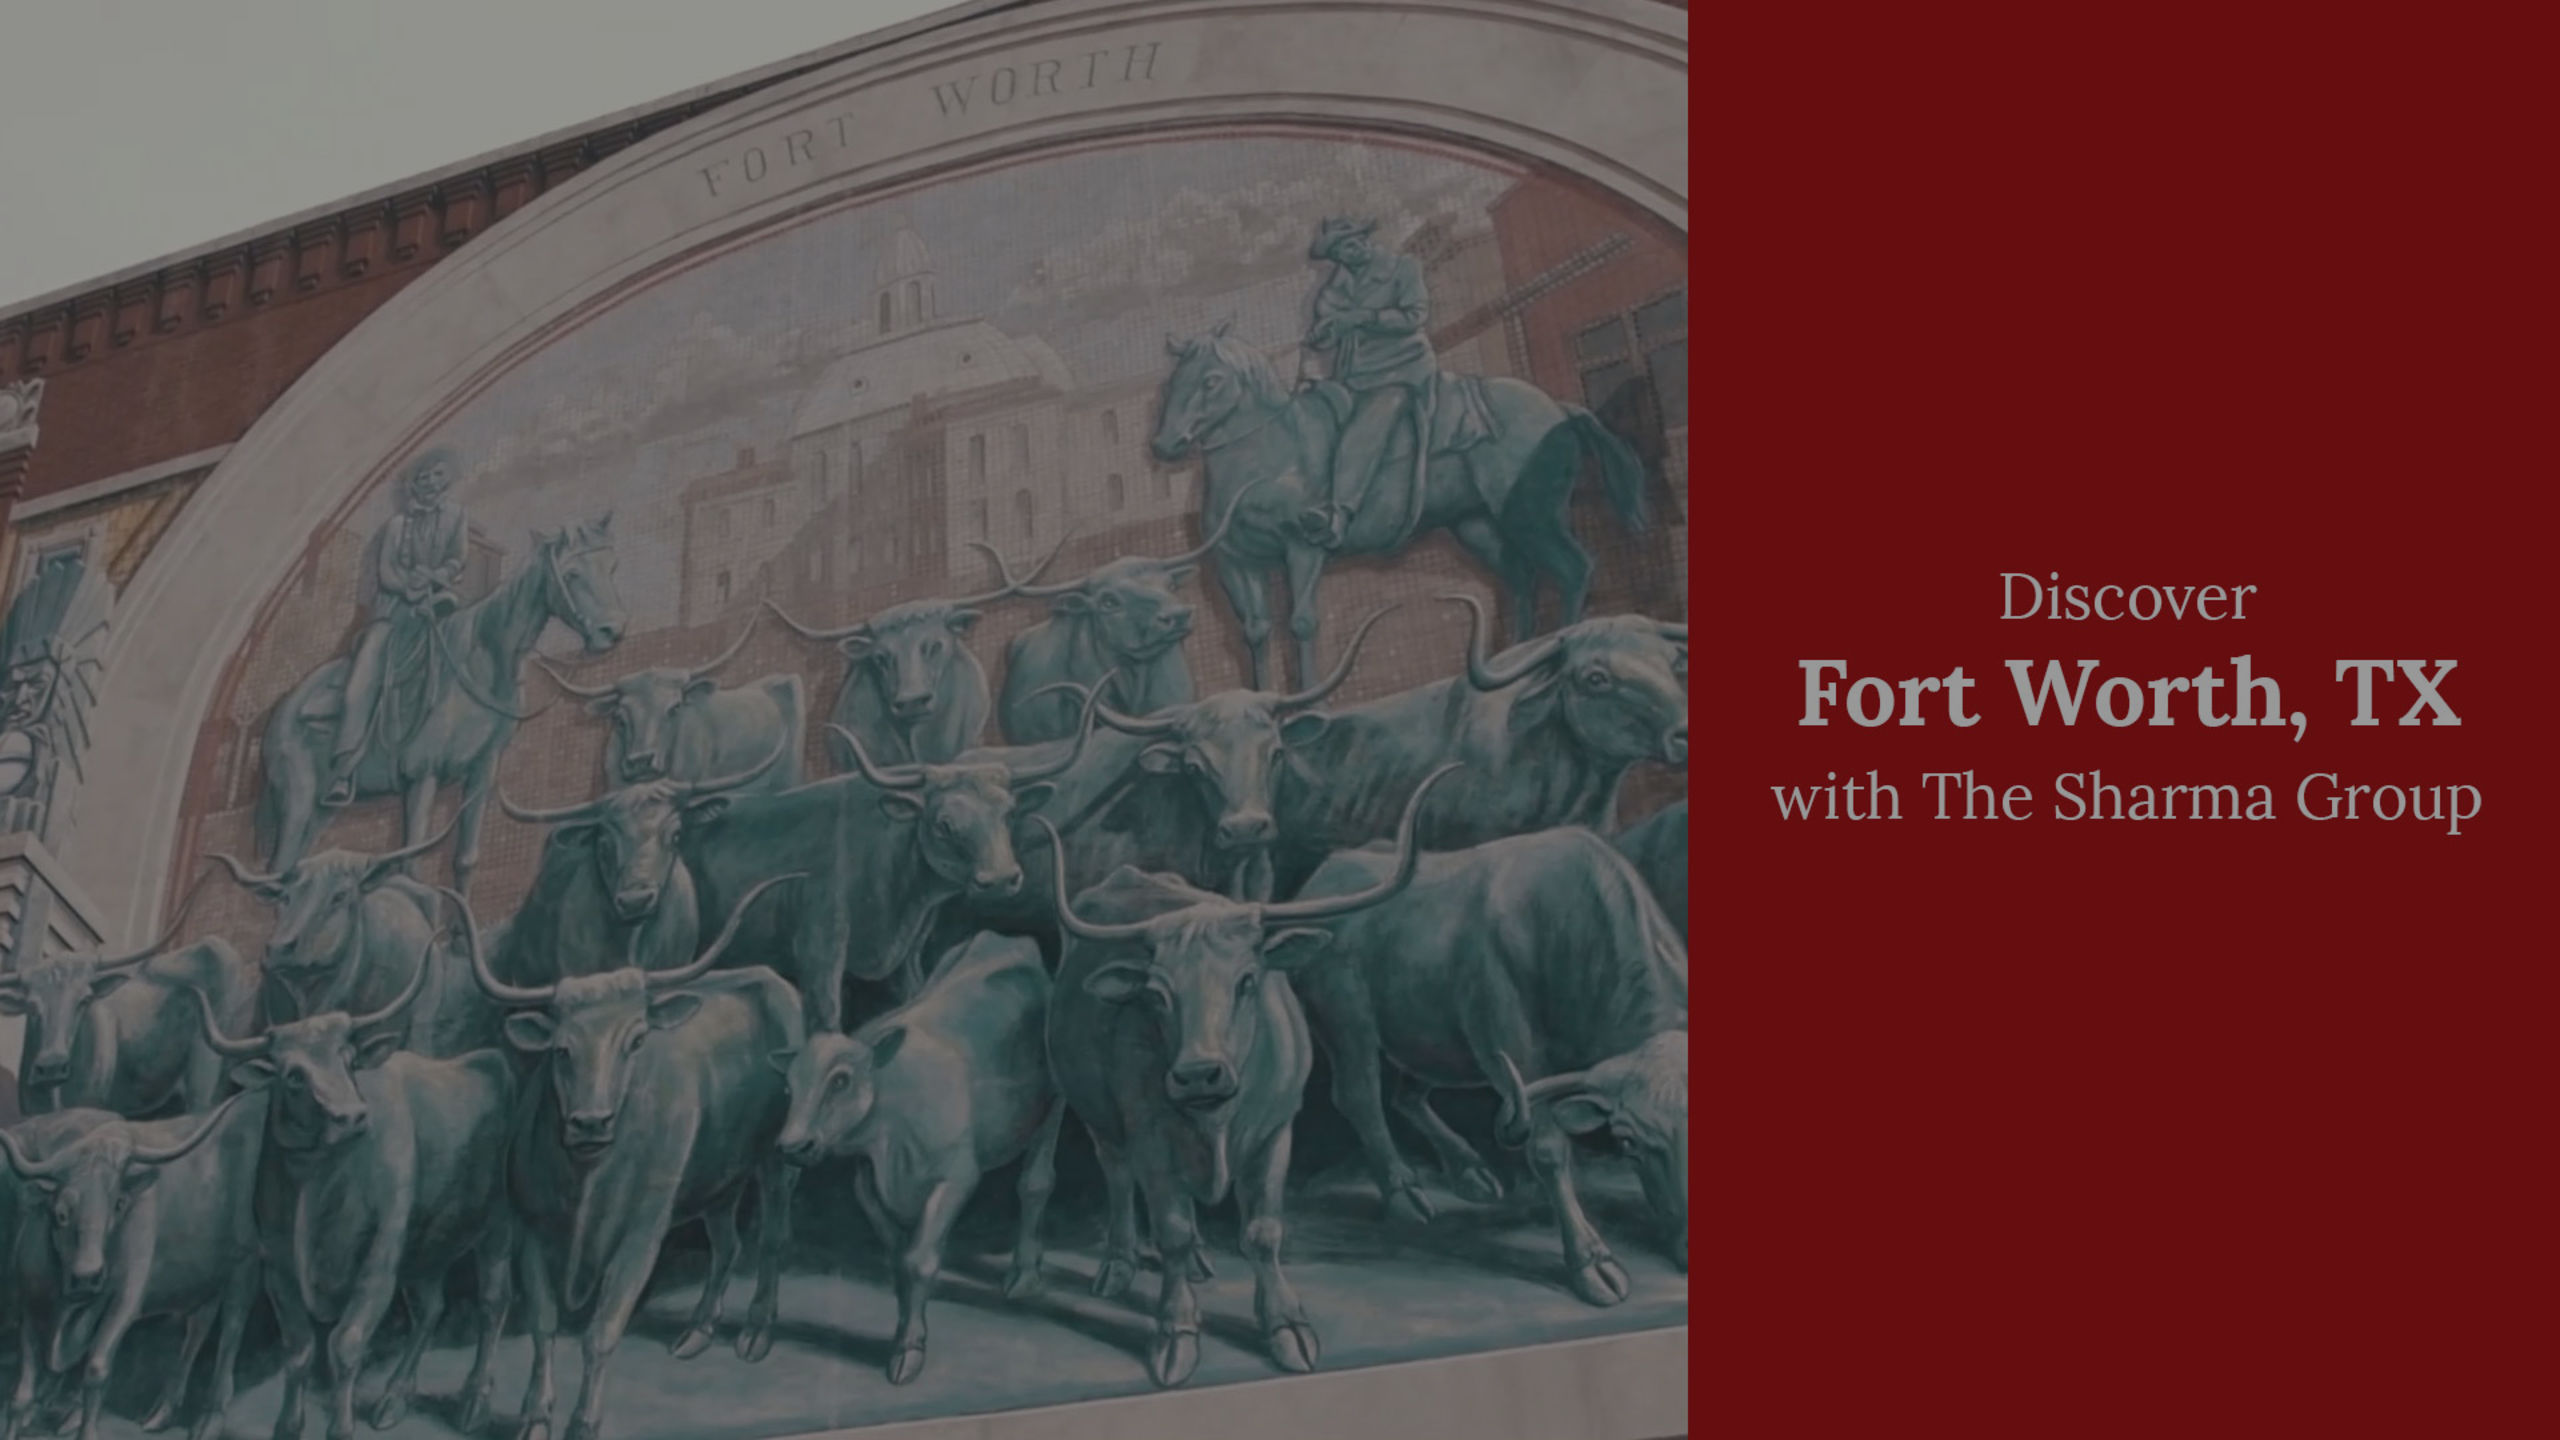 Discover Fort Worth with The Sharma Group